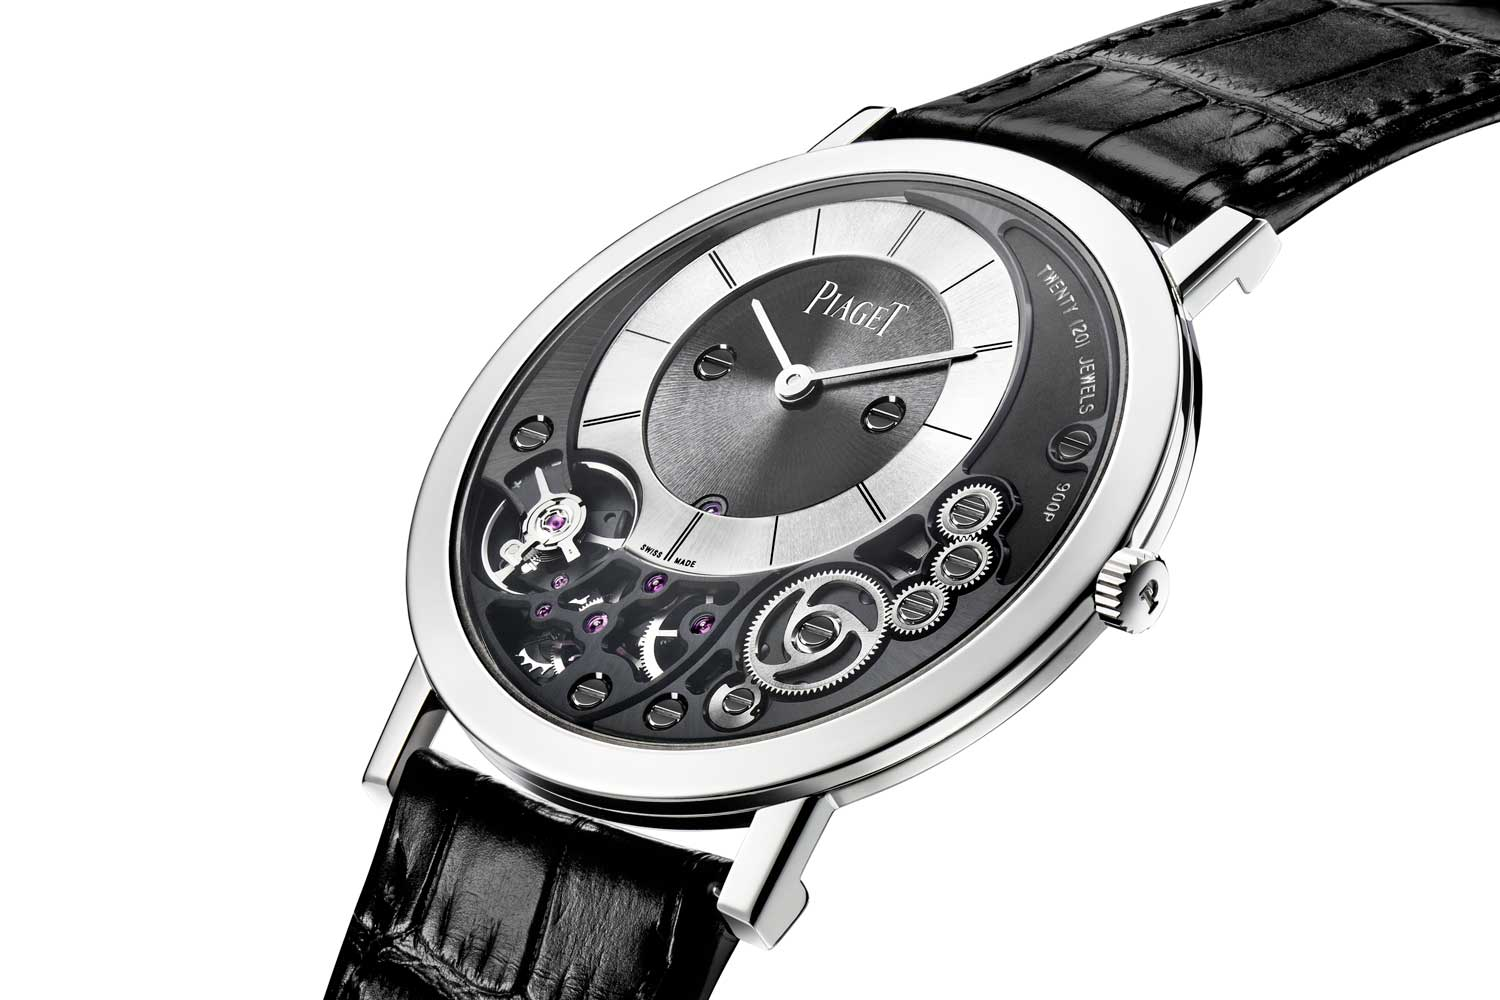 The 38mm Piaget Altiplano powered by the ultra-thin hand-wound 900P caliber, which forms the baseplate and case of the watch